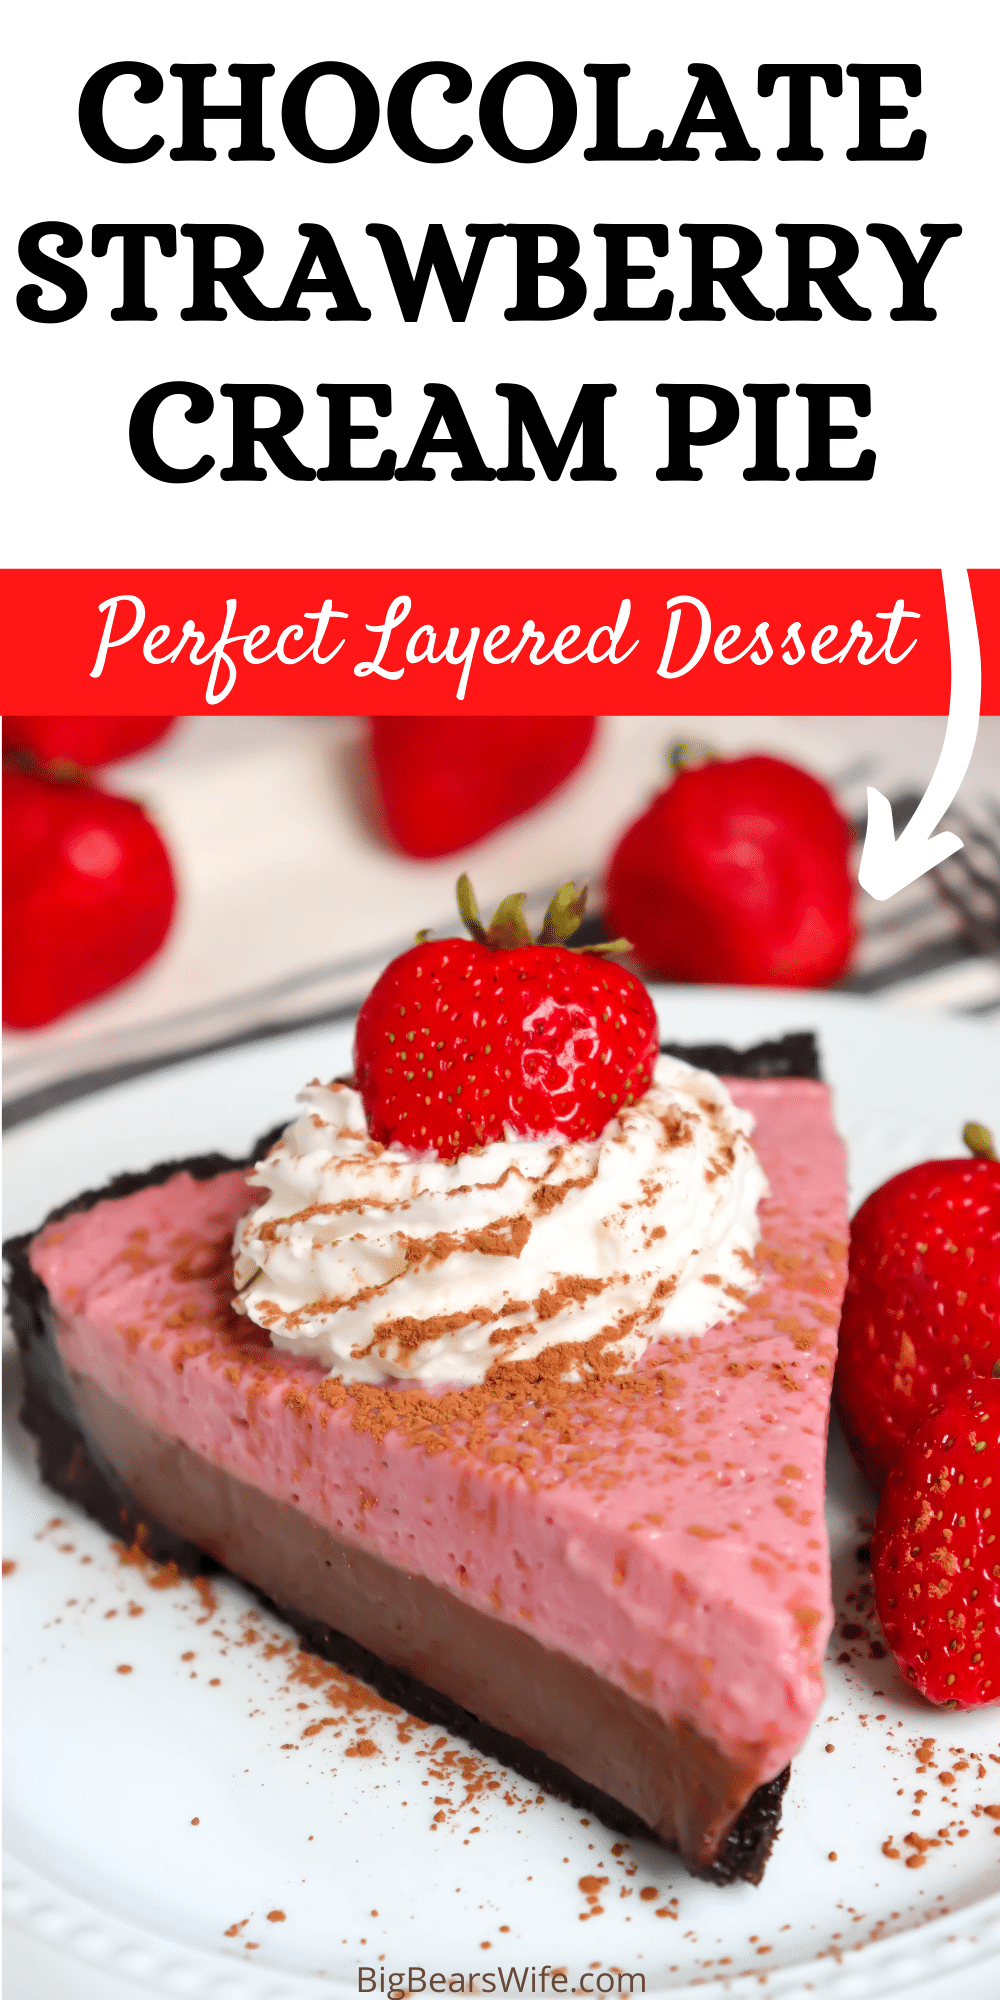 Love Chocolate and Strawberry together? This Chocolate Strawberry Cream Pie combines both flavors with a chocolate cookie crust, homemade chocolate pie layer that is topped with a homemade strawberry pudding pie layer and Crème Chantilly! via @bigbearswife